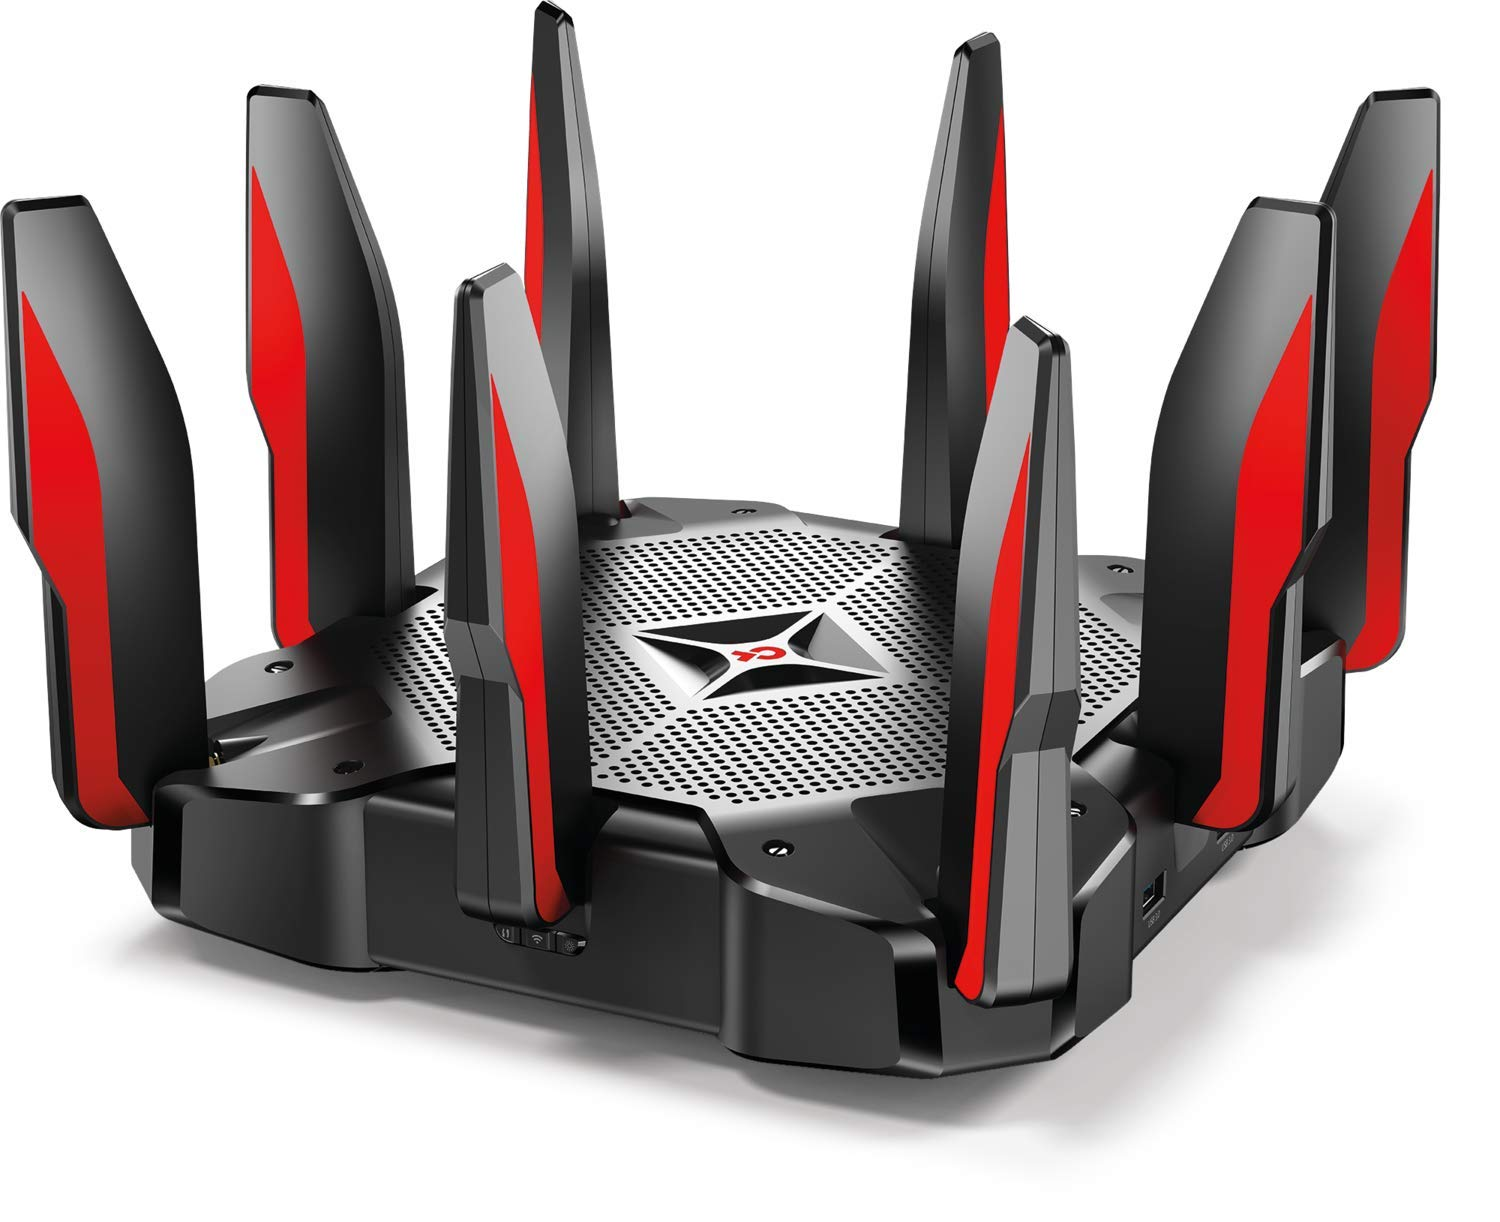 TP-Link AC5400 Tri Band Gaming Router - MU-MIMO, 1.8GHz Quad-Core 64-bit CPU, Game First Priority, Link Aggregation, 16GB Storage, Airtime Fairness, Secured Wifi, Works with Alexa (Archer C5400X) by TP-LINK